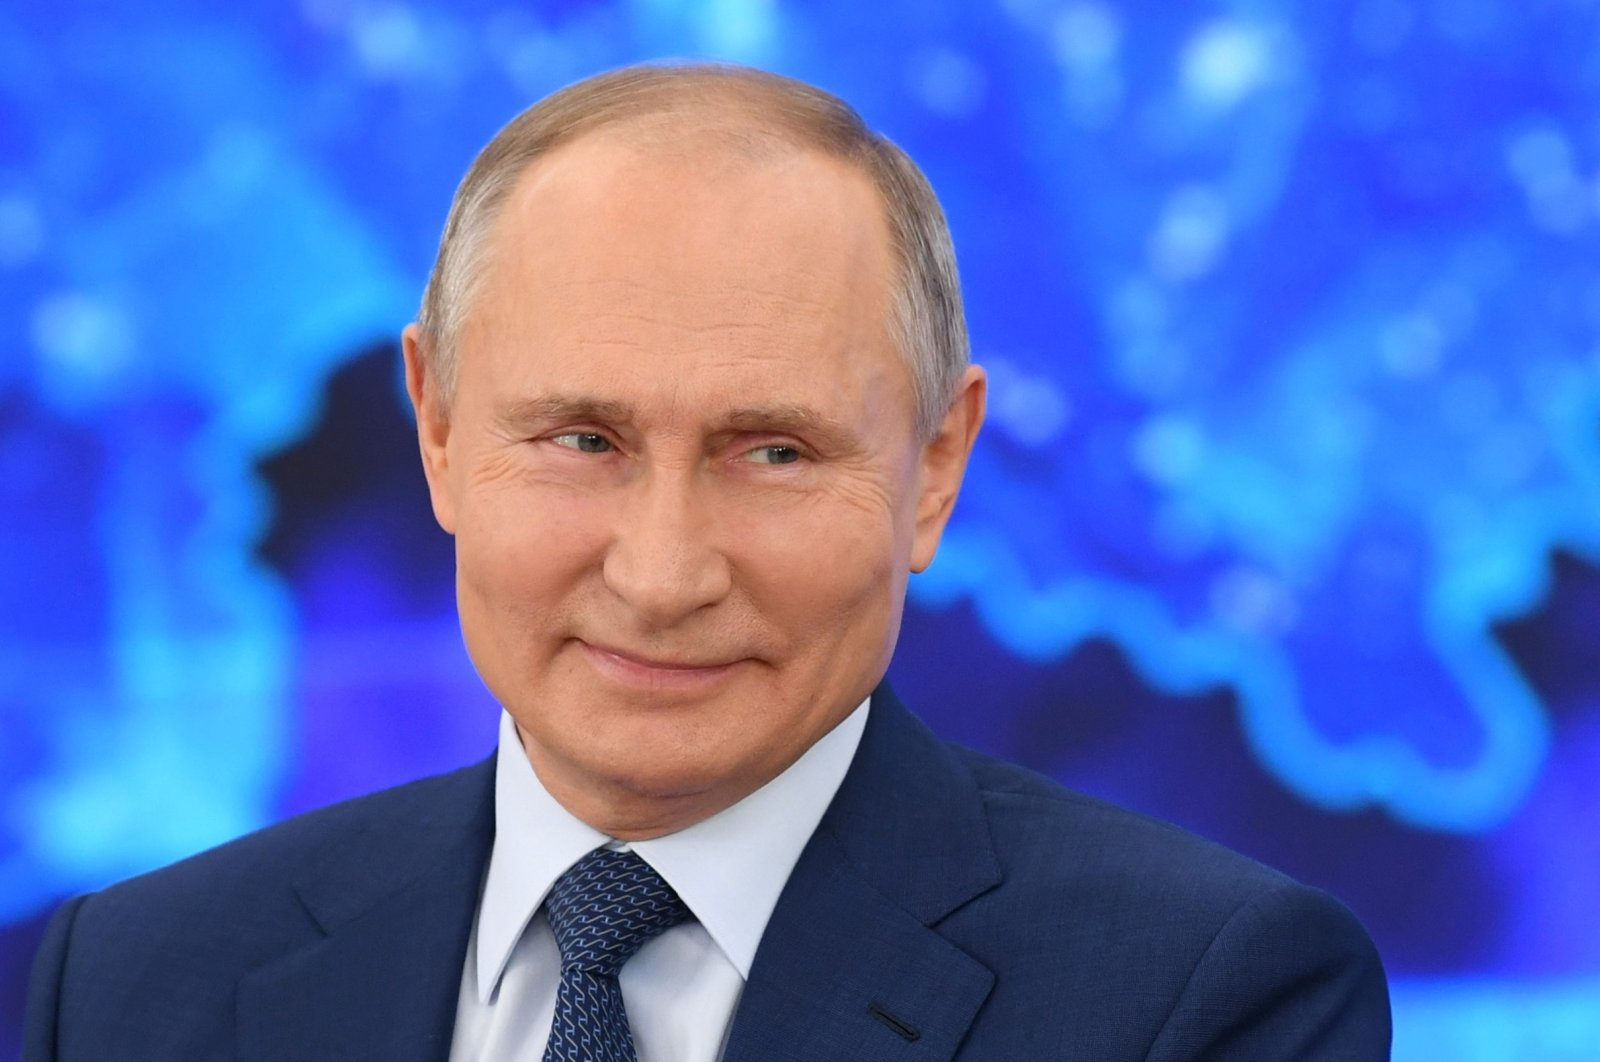 Russian President Vladimir Putin attends his annual end-of-year news conference, held online in a videoconference mode, at the Novo-Ogaryovo state residence outside Moscow, Russia, Dec. 17, 2020. (Reuters Photo)